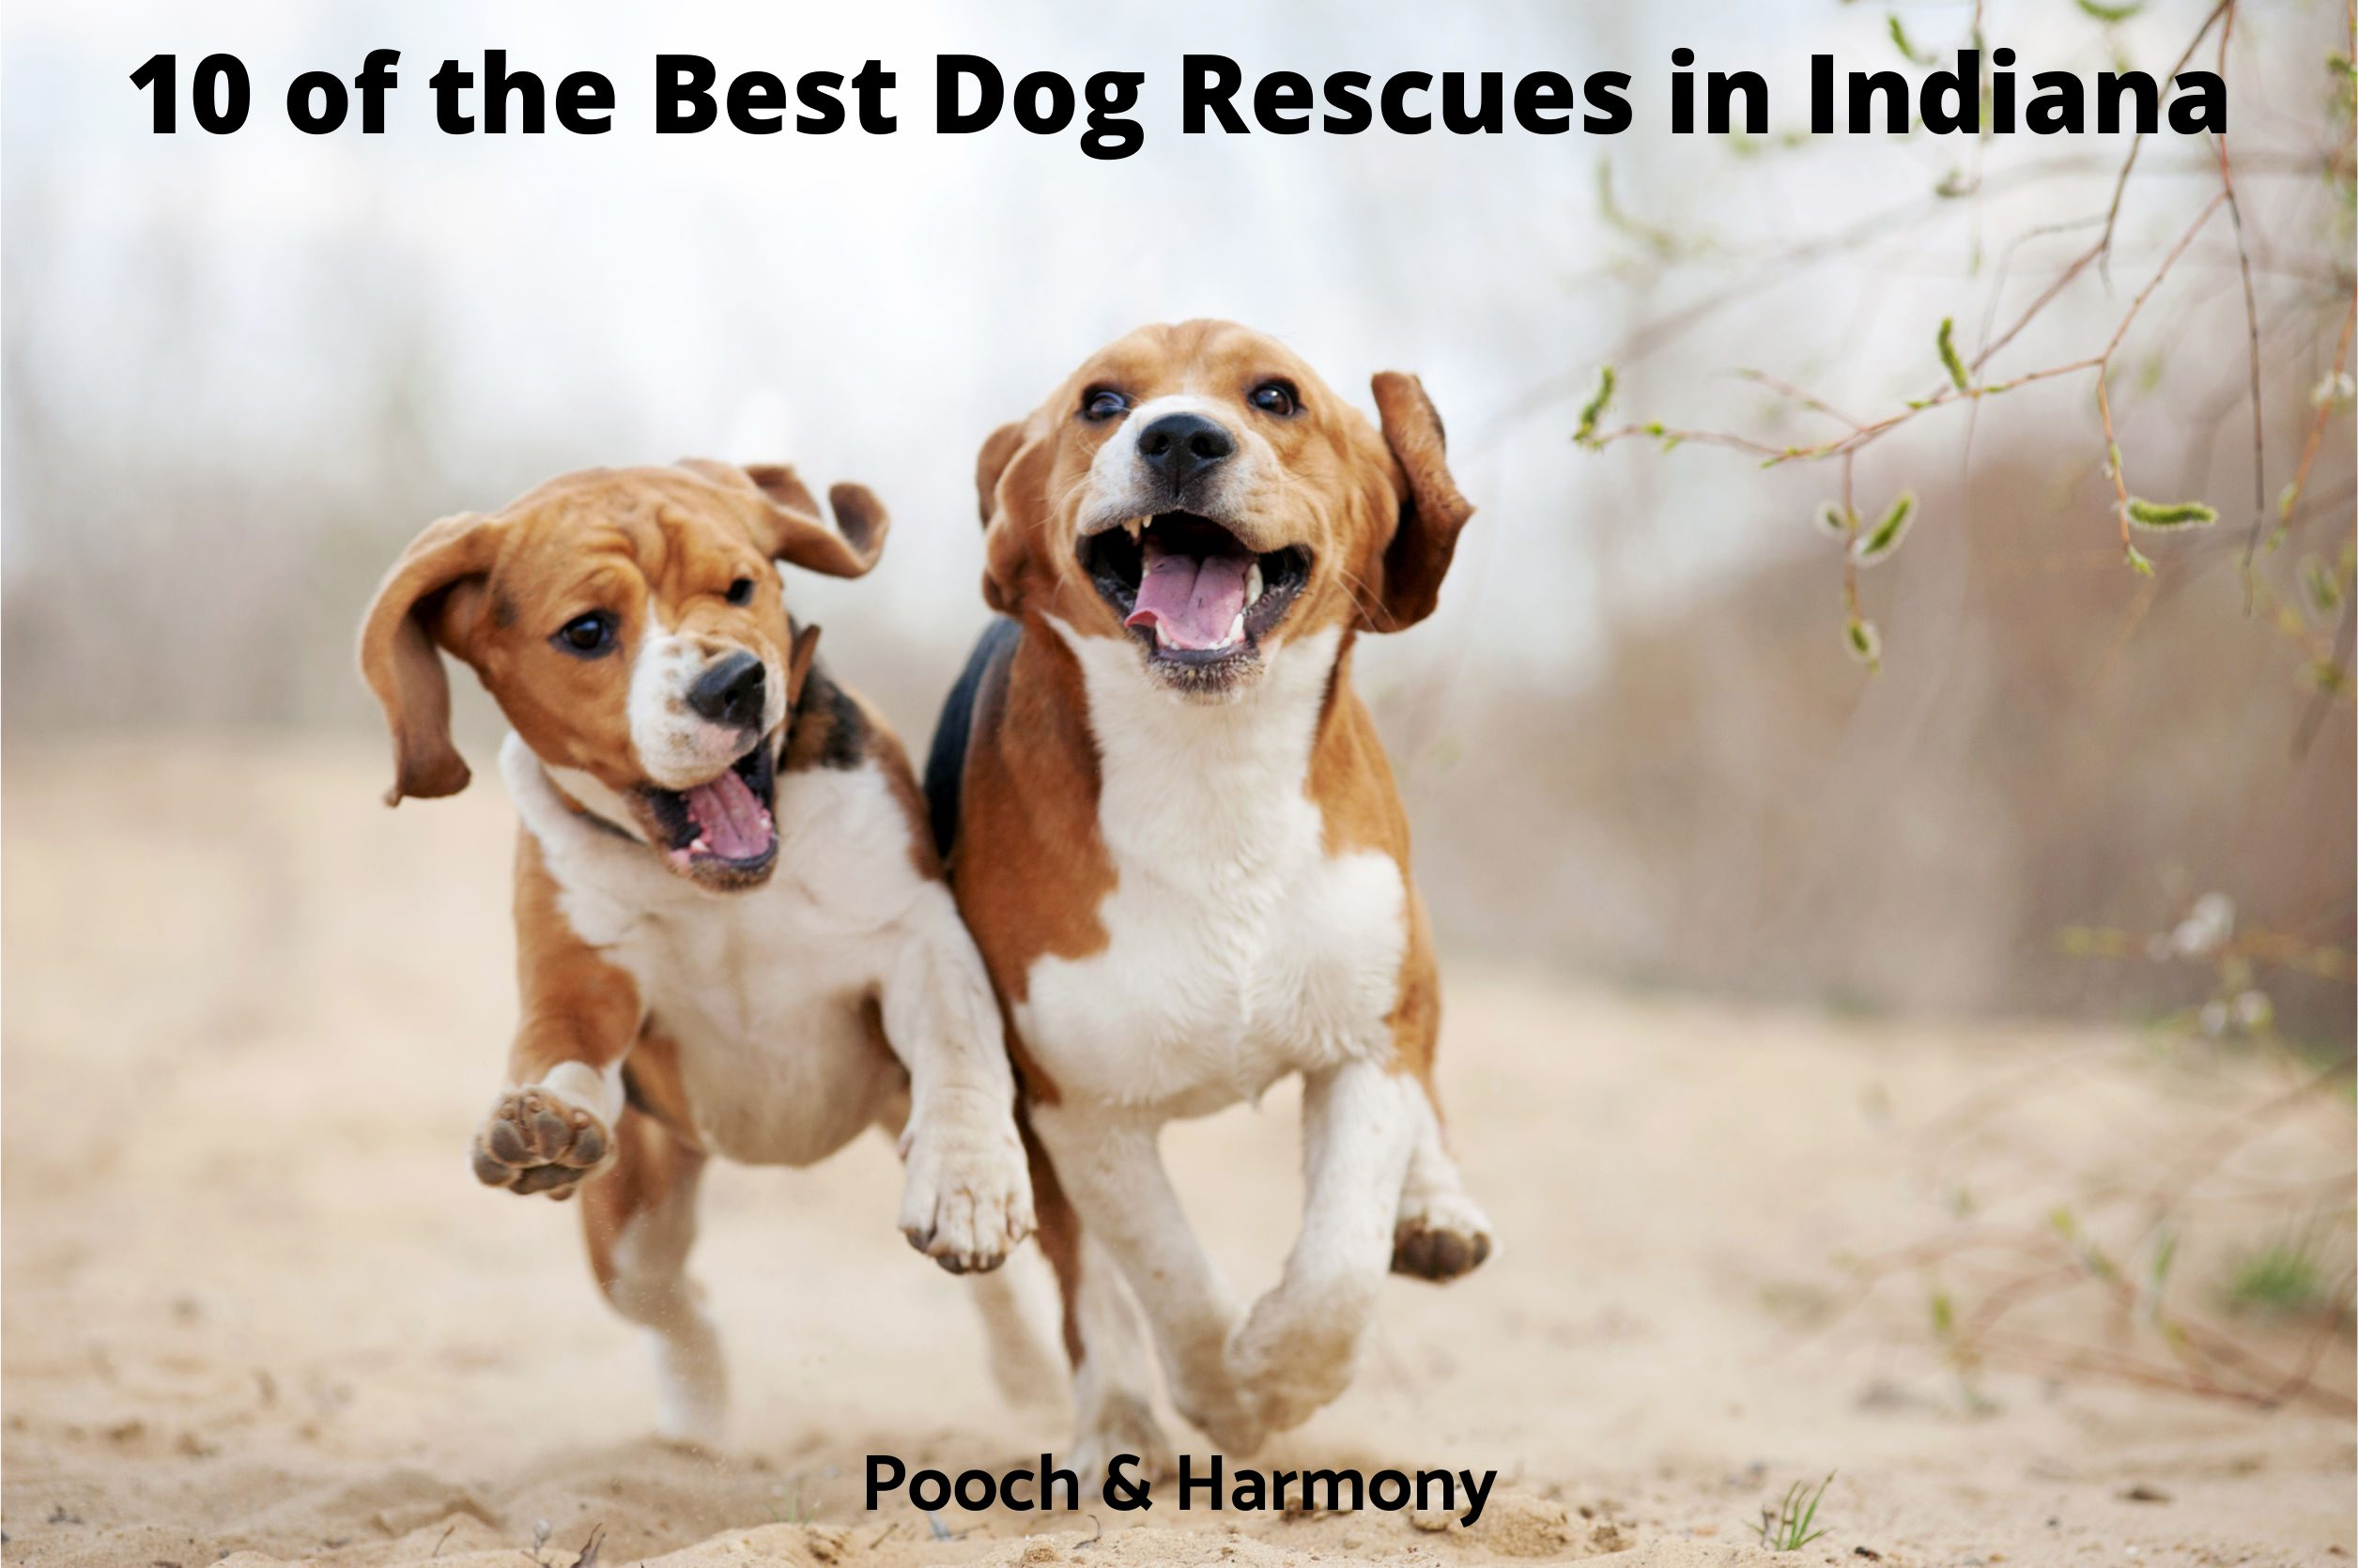 Best Dog Rescues in Indiana